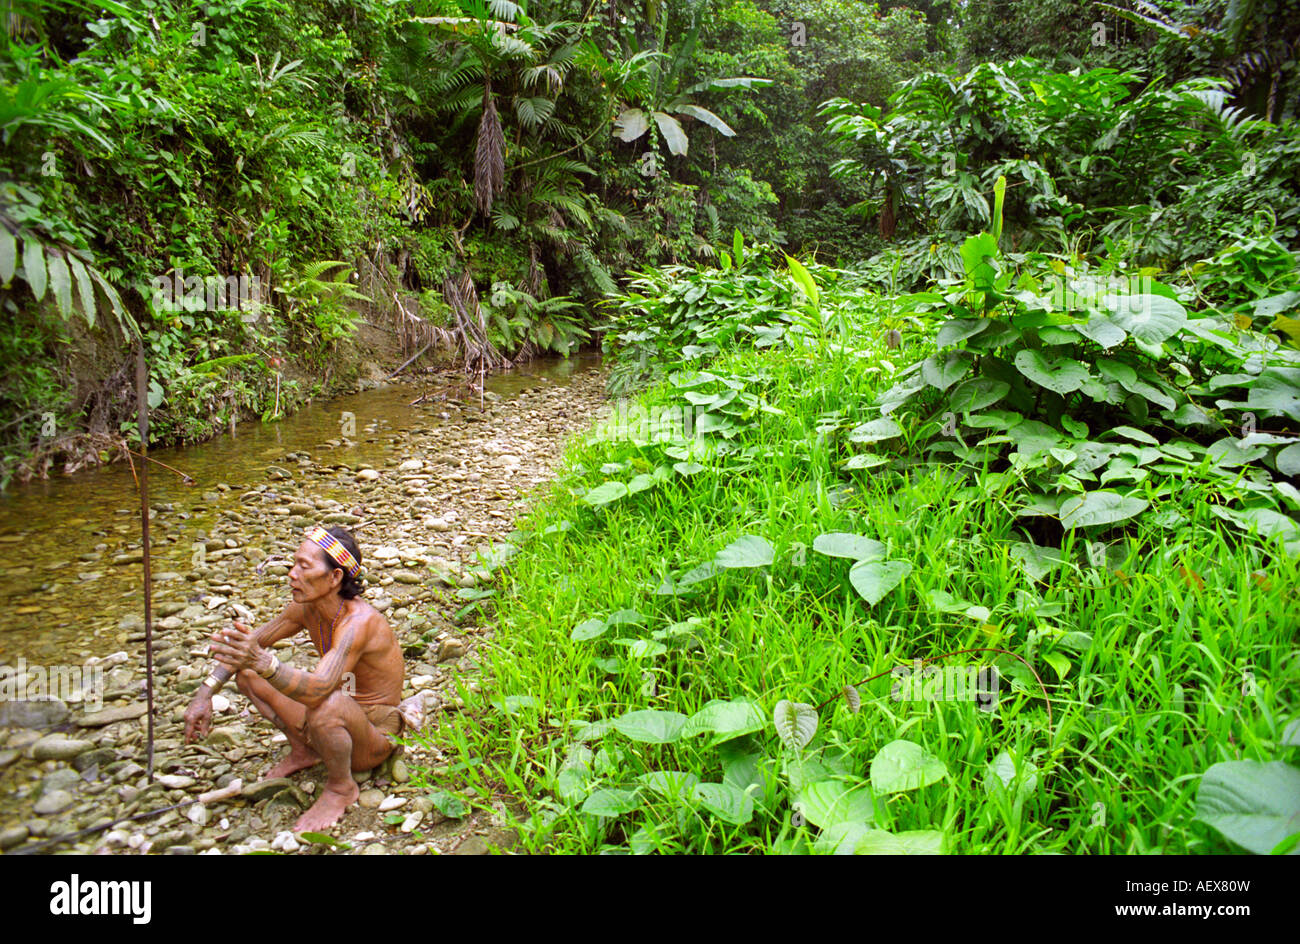 Mentawai man sitting by a stream in the forest on Siberut Island off Sumatra in Indonesia - Stock Image